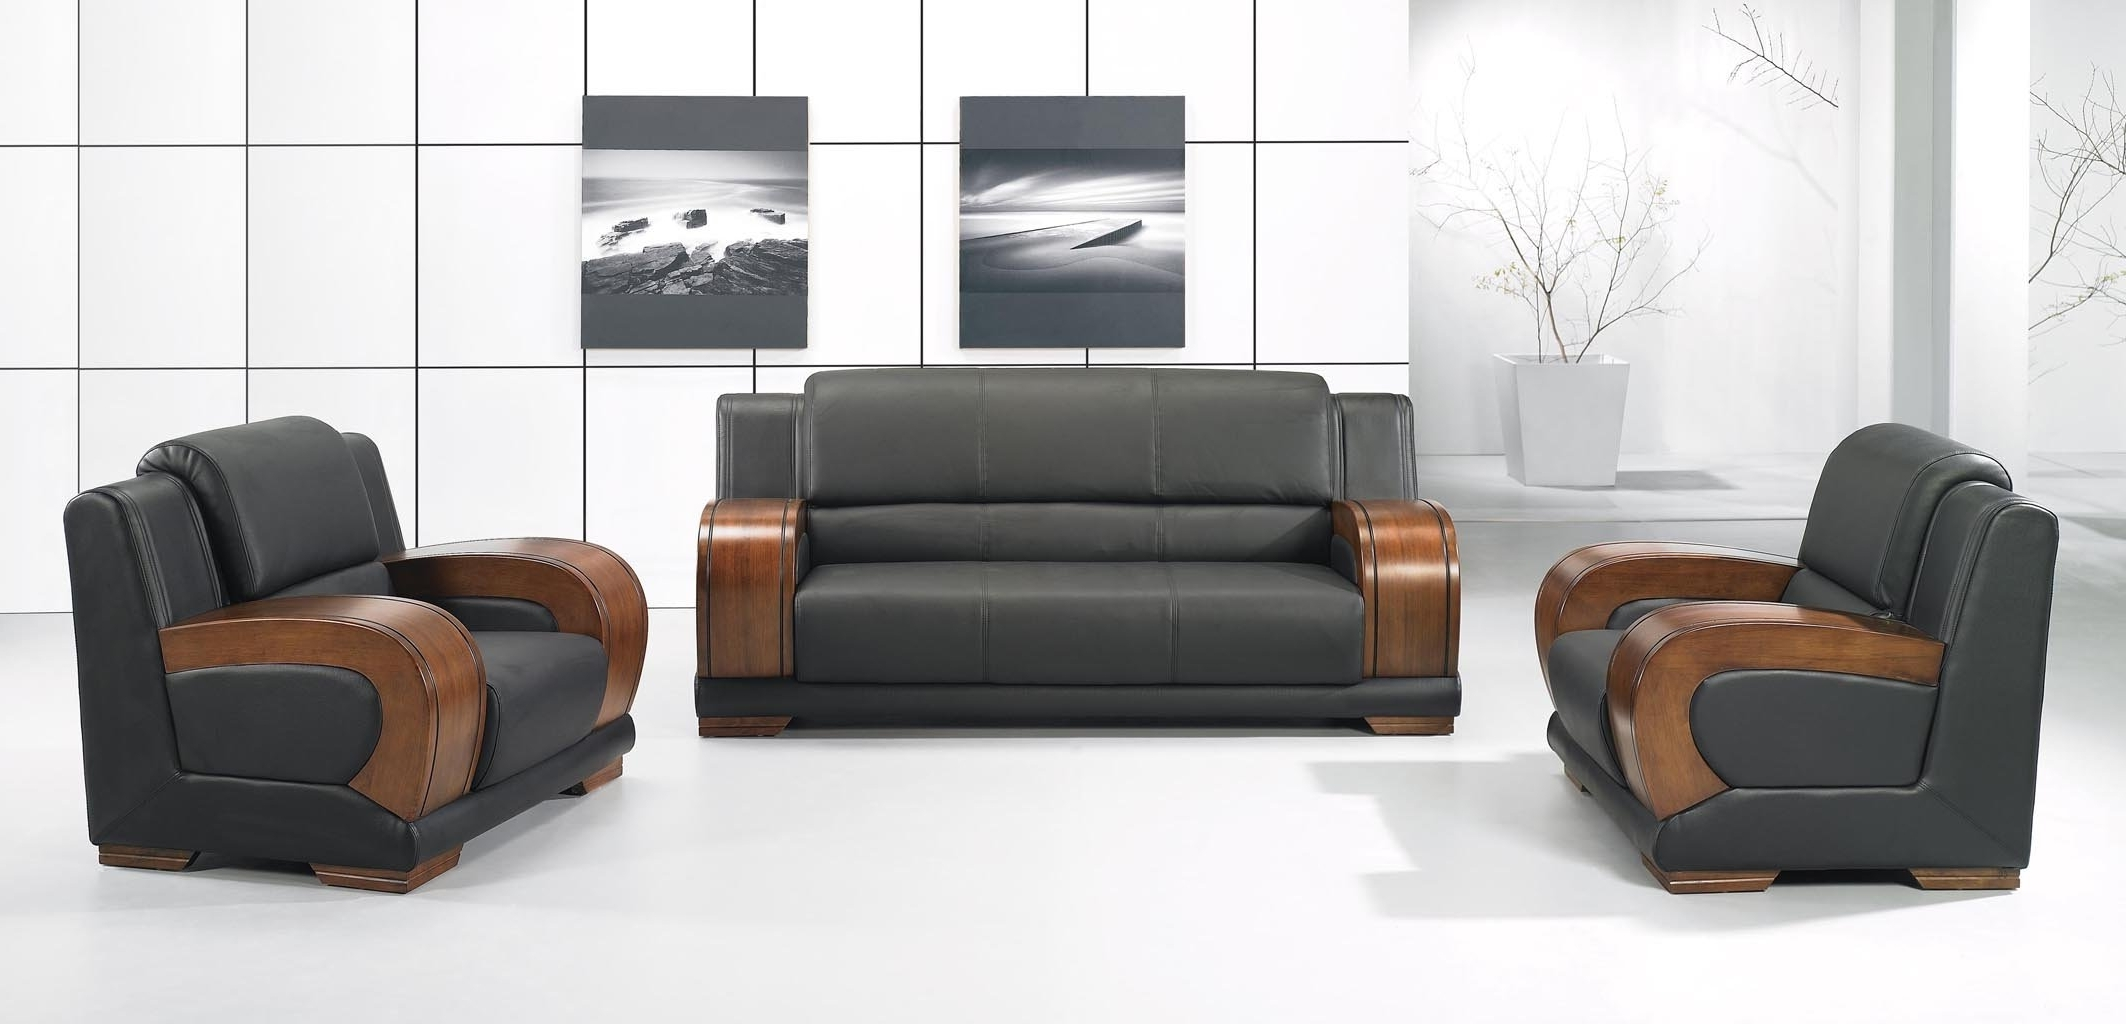 Office Sofas And Chairs Pertaining To Trendy Reception Office Furniture Type Architect Modern Black Guest (View 13 of 20)